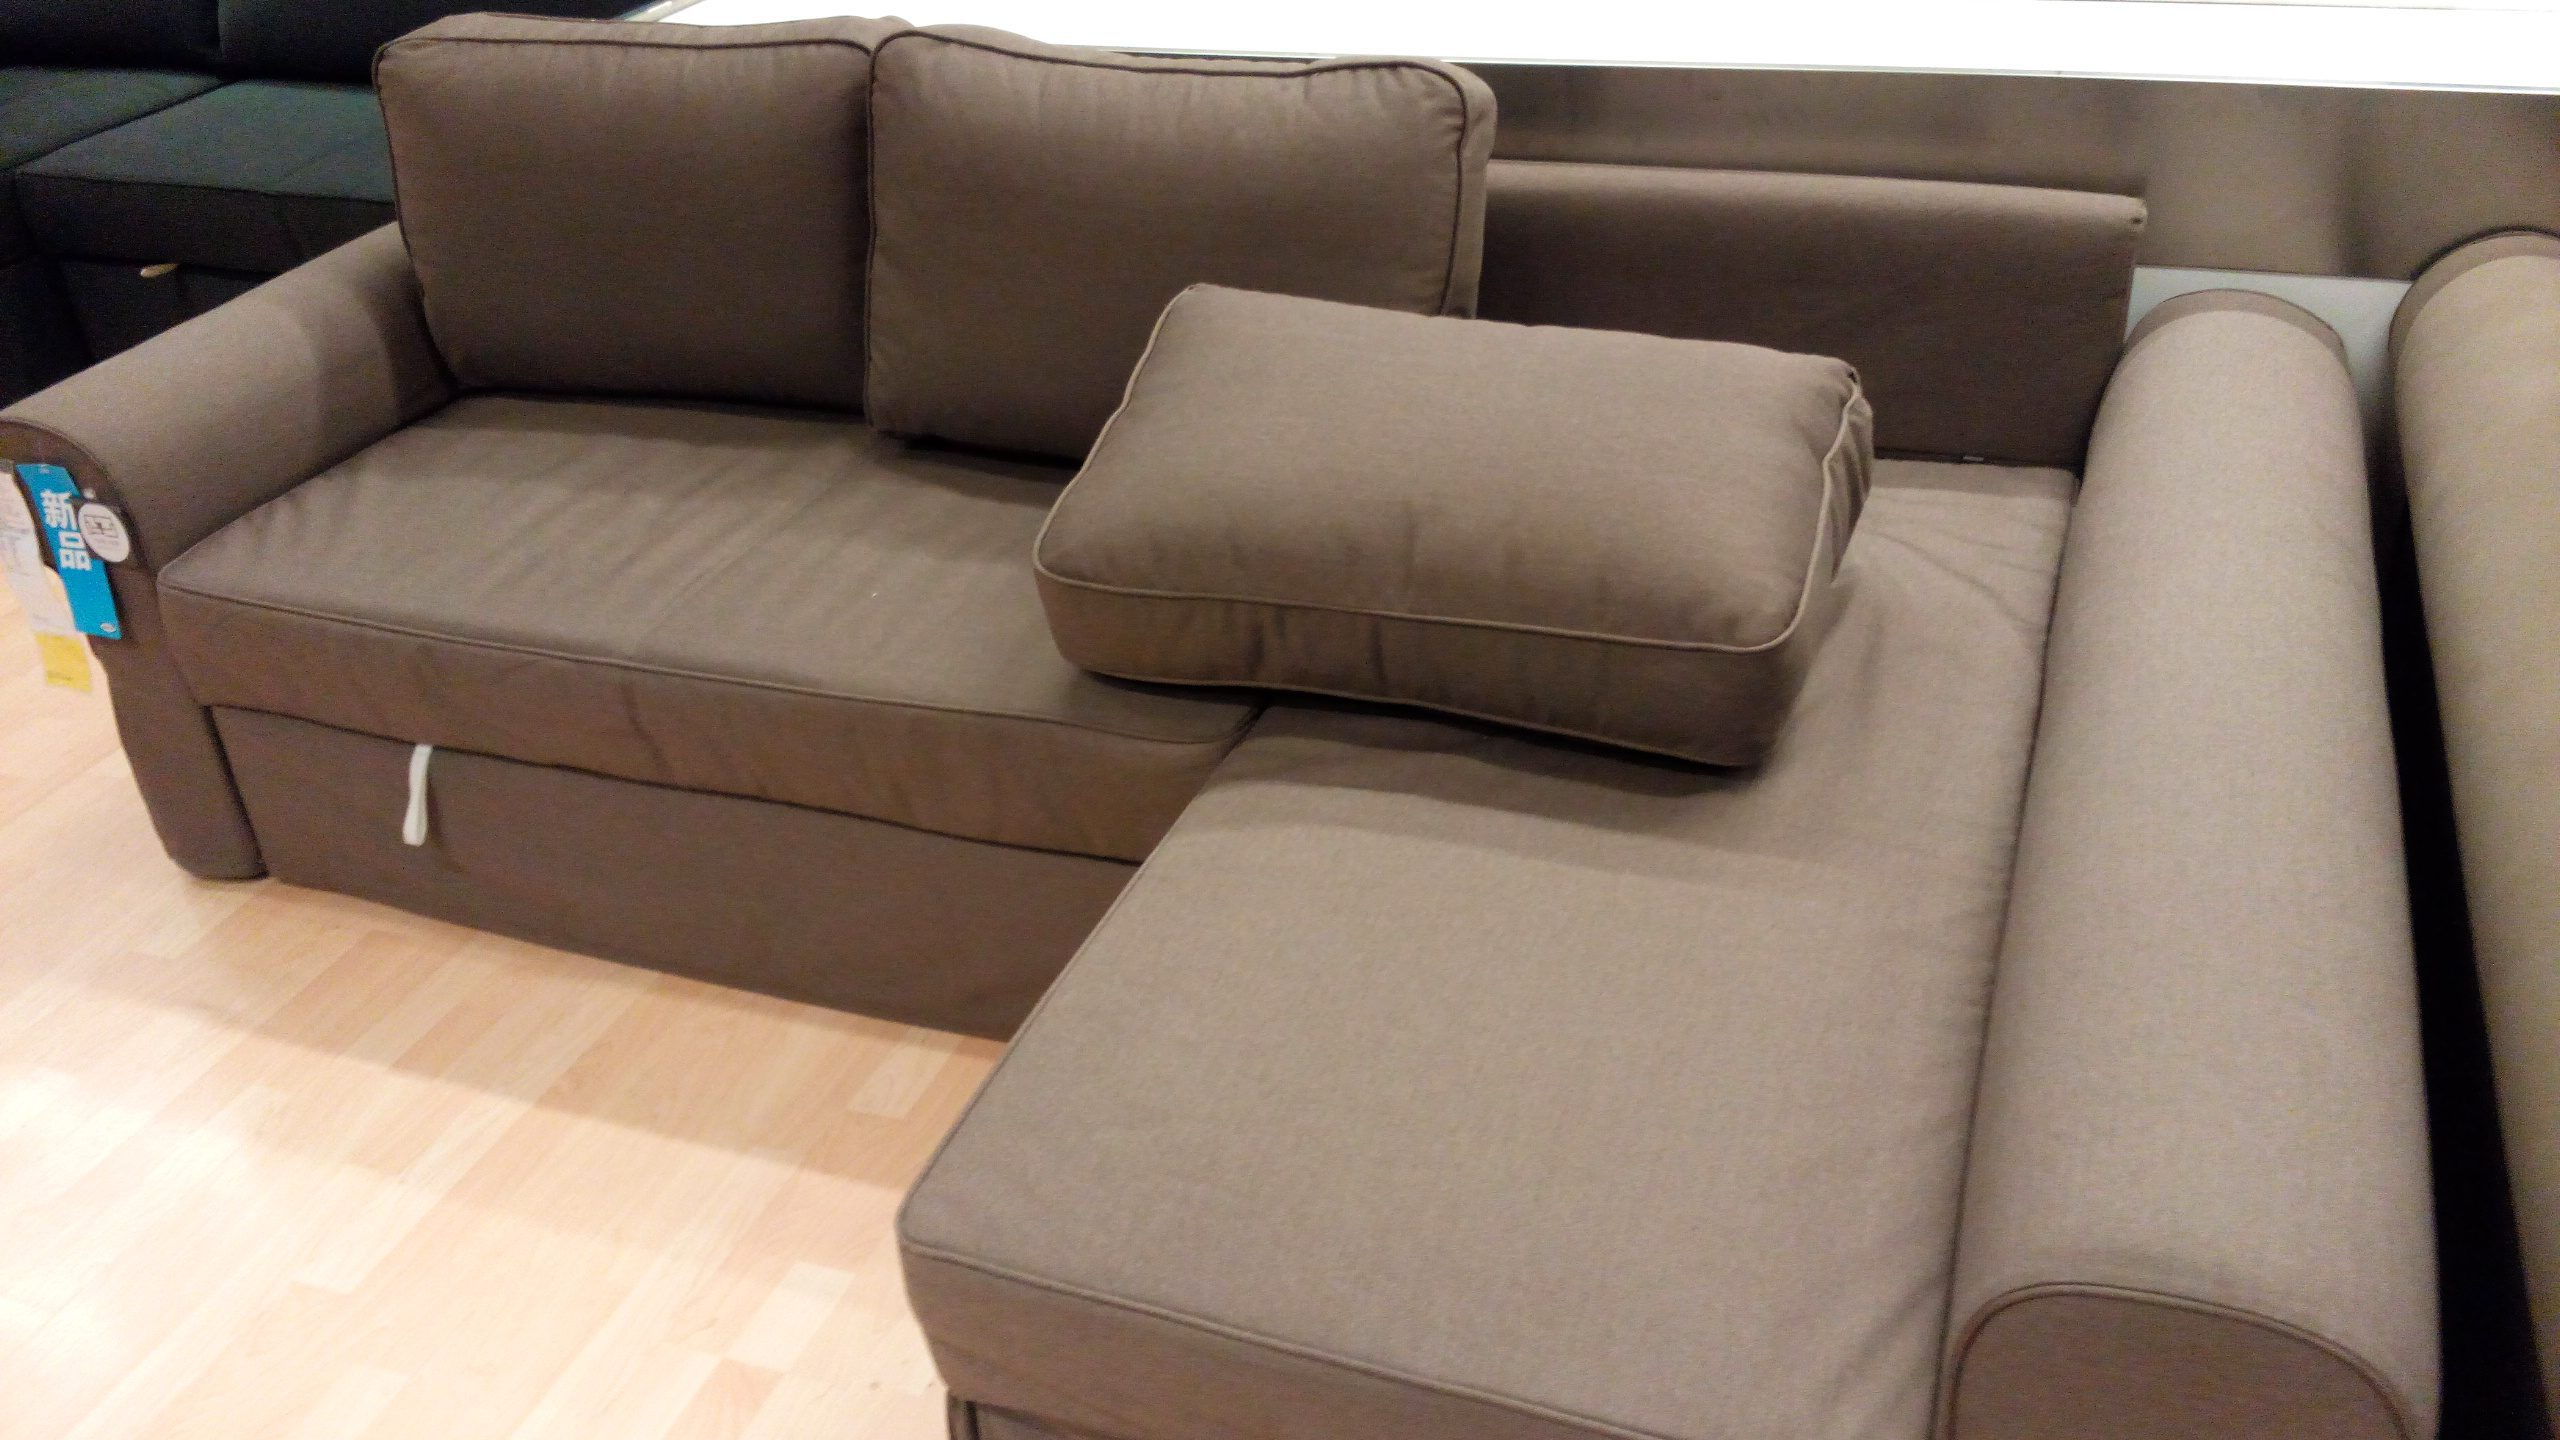 Ikea Online Bettsofa Bettsofa 200 Cm Simple Schlafsofa Grau Belfast With Bettsofa 200